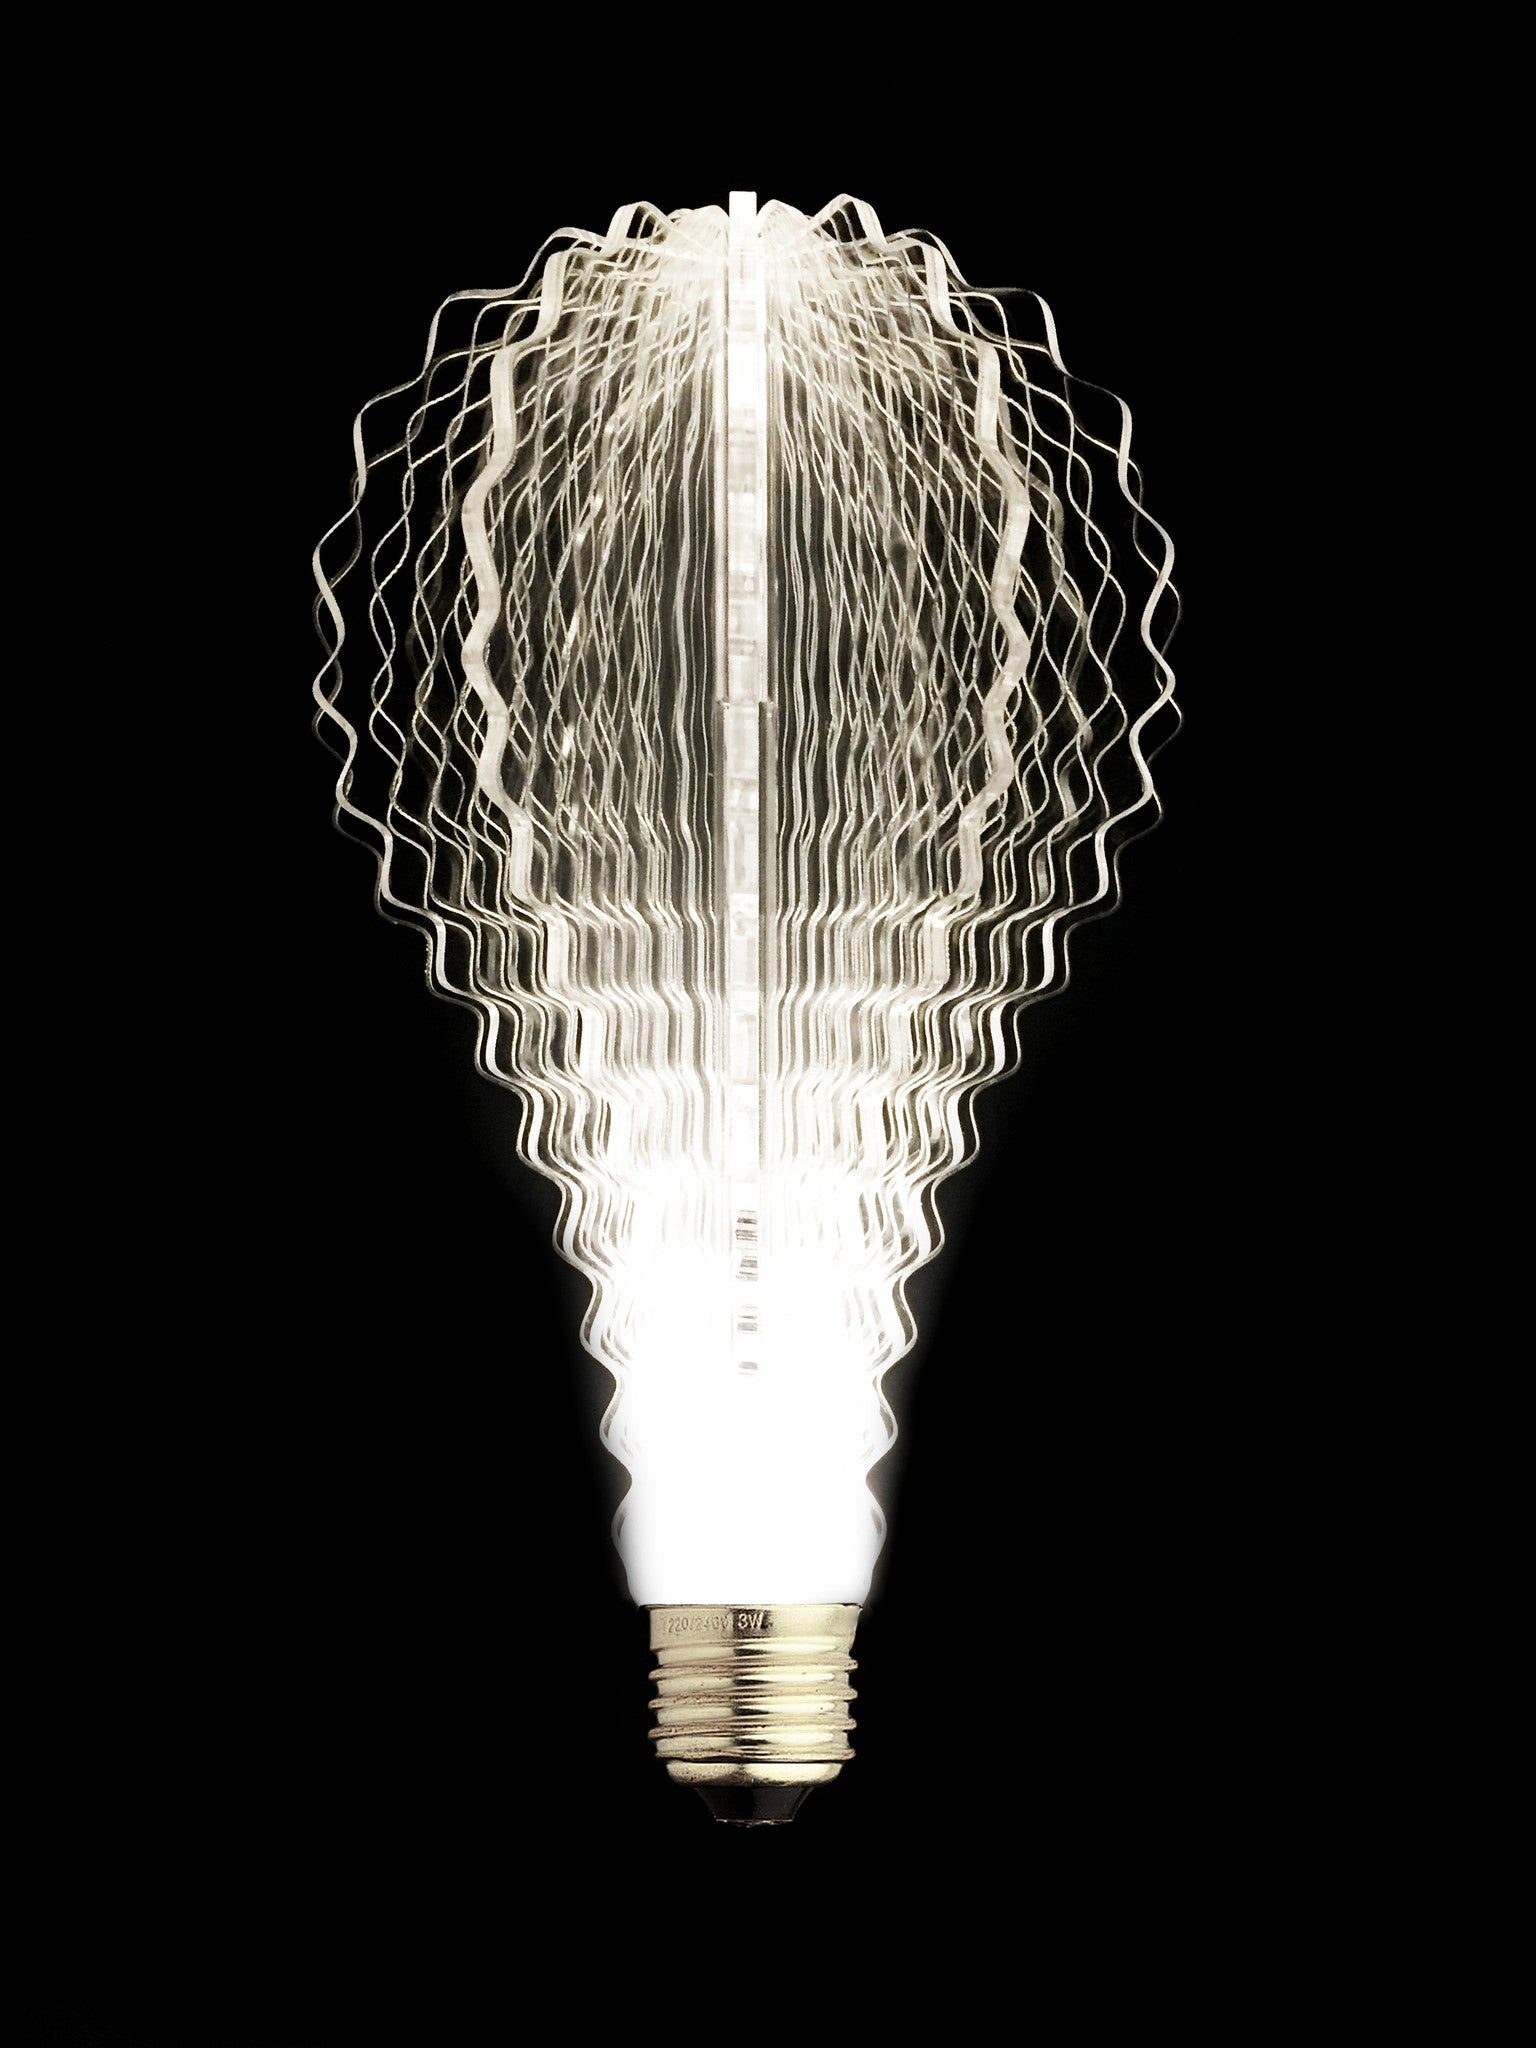 WAVE . CLASSIC LIGHTING BULBS . DESIGN 1 + 1 . HONG KONG DESIGNER